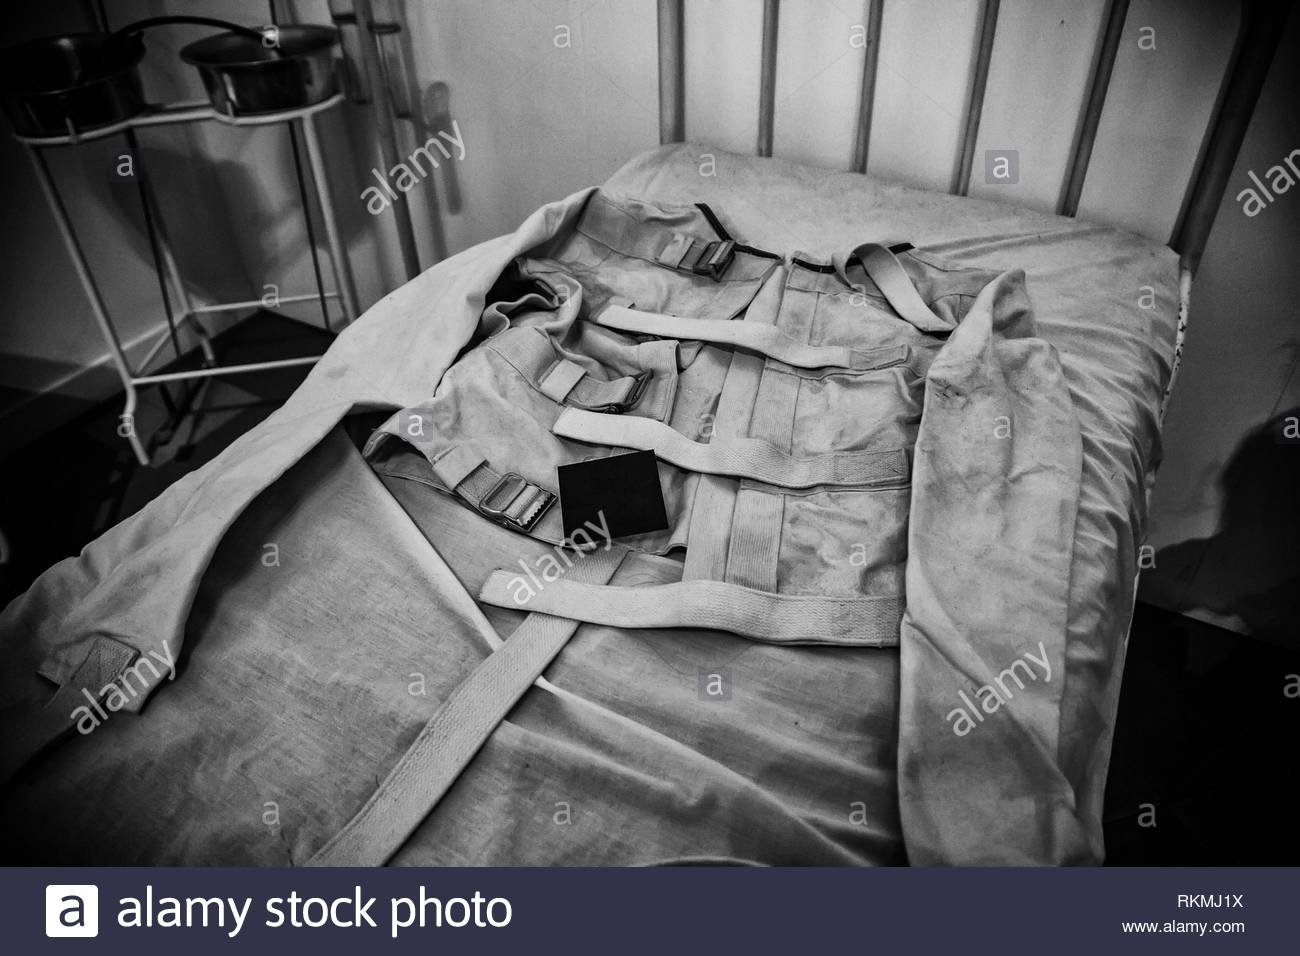 Old psychiatric straitjacket, mental hospital detail, psychosis. - Stock Image